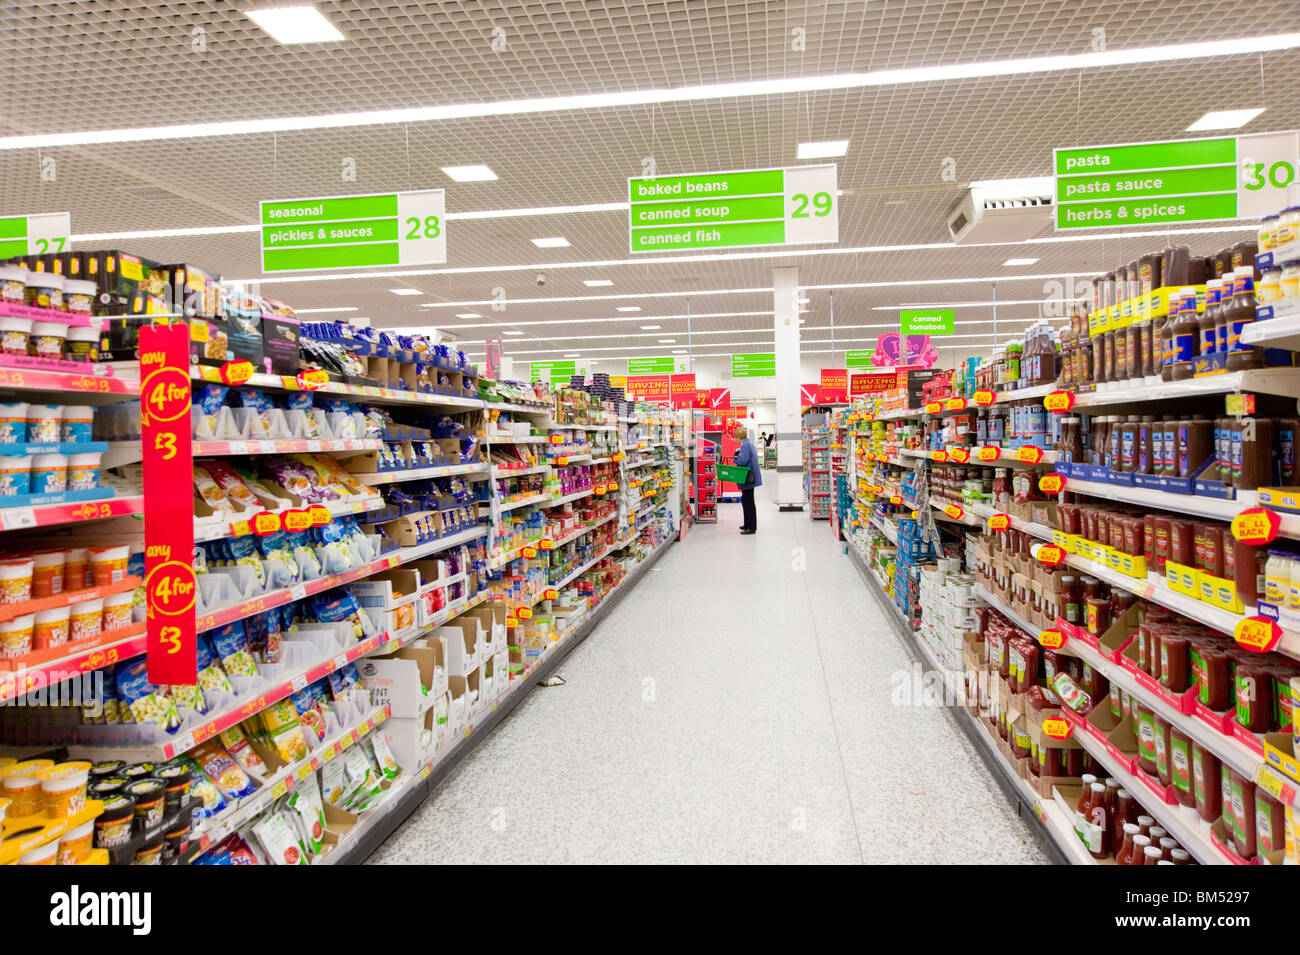 the analysis of the uk supermarket One in five uk supermarkets must close to restore profit growth, say analysts goldman sachs analysts believe tesco has been hardest hit by the effect of altered shopping habits and discount stores.